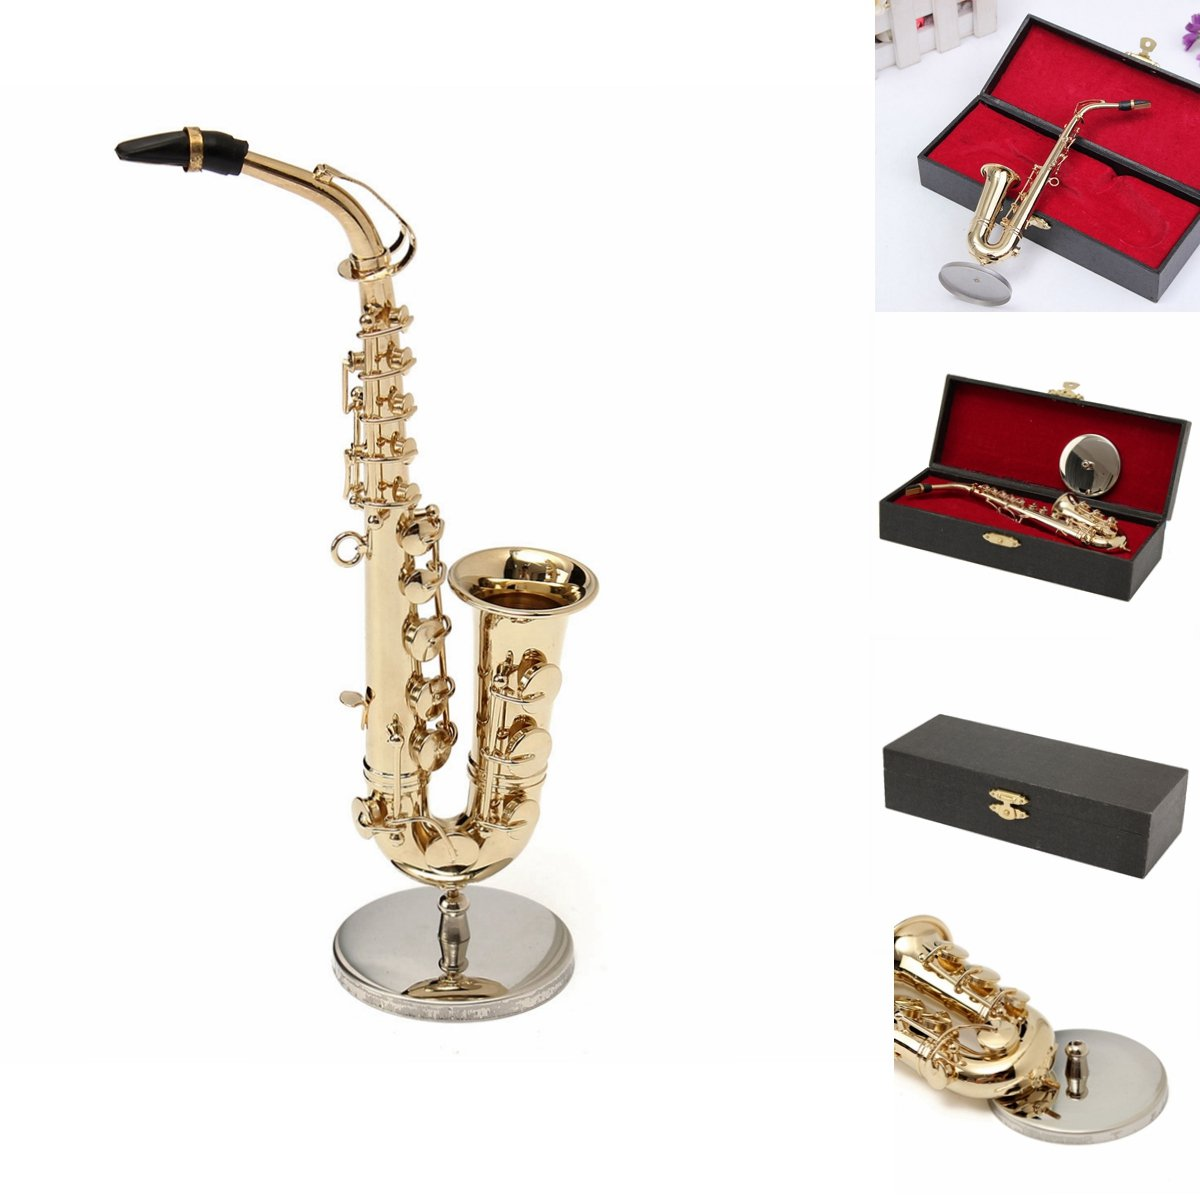 MECO 1/6 Model Saxophone Toys Alto Sax Mini Musical Instrument Leather Box Gift